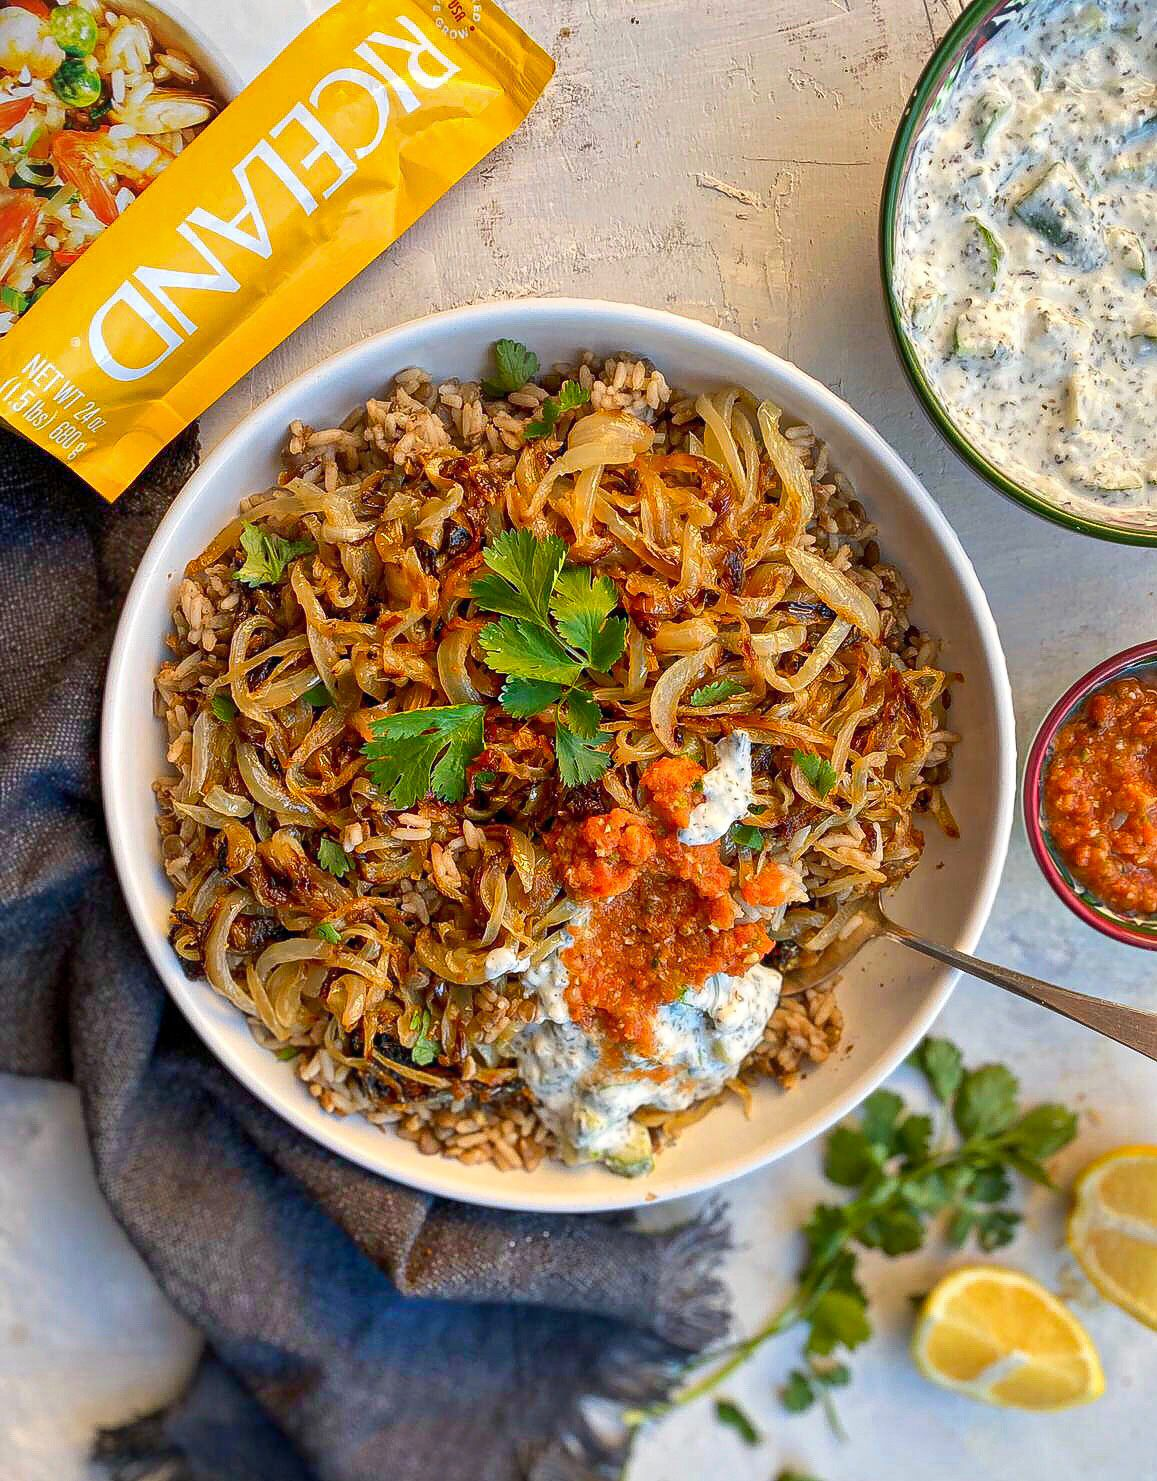 Mujadara (A Middle Eastern Rice & Lentil dish topped with ...